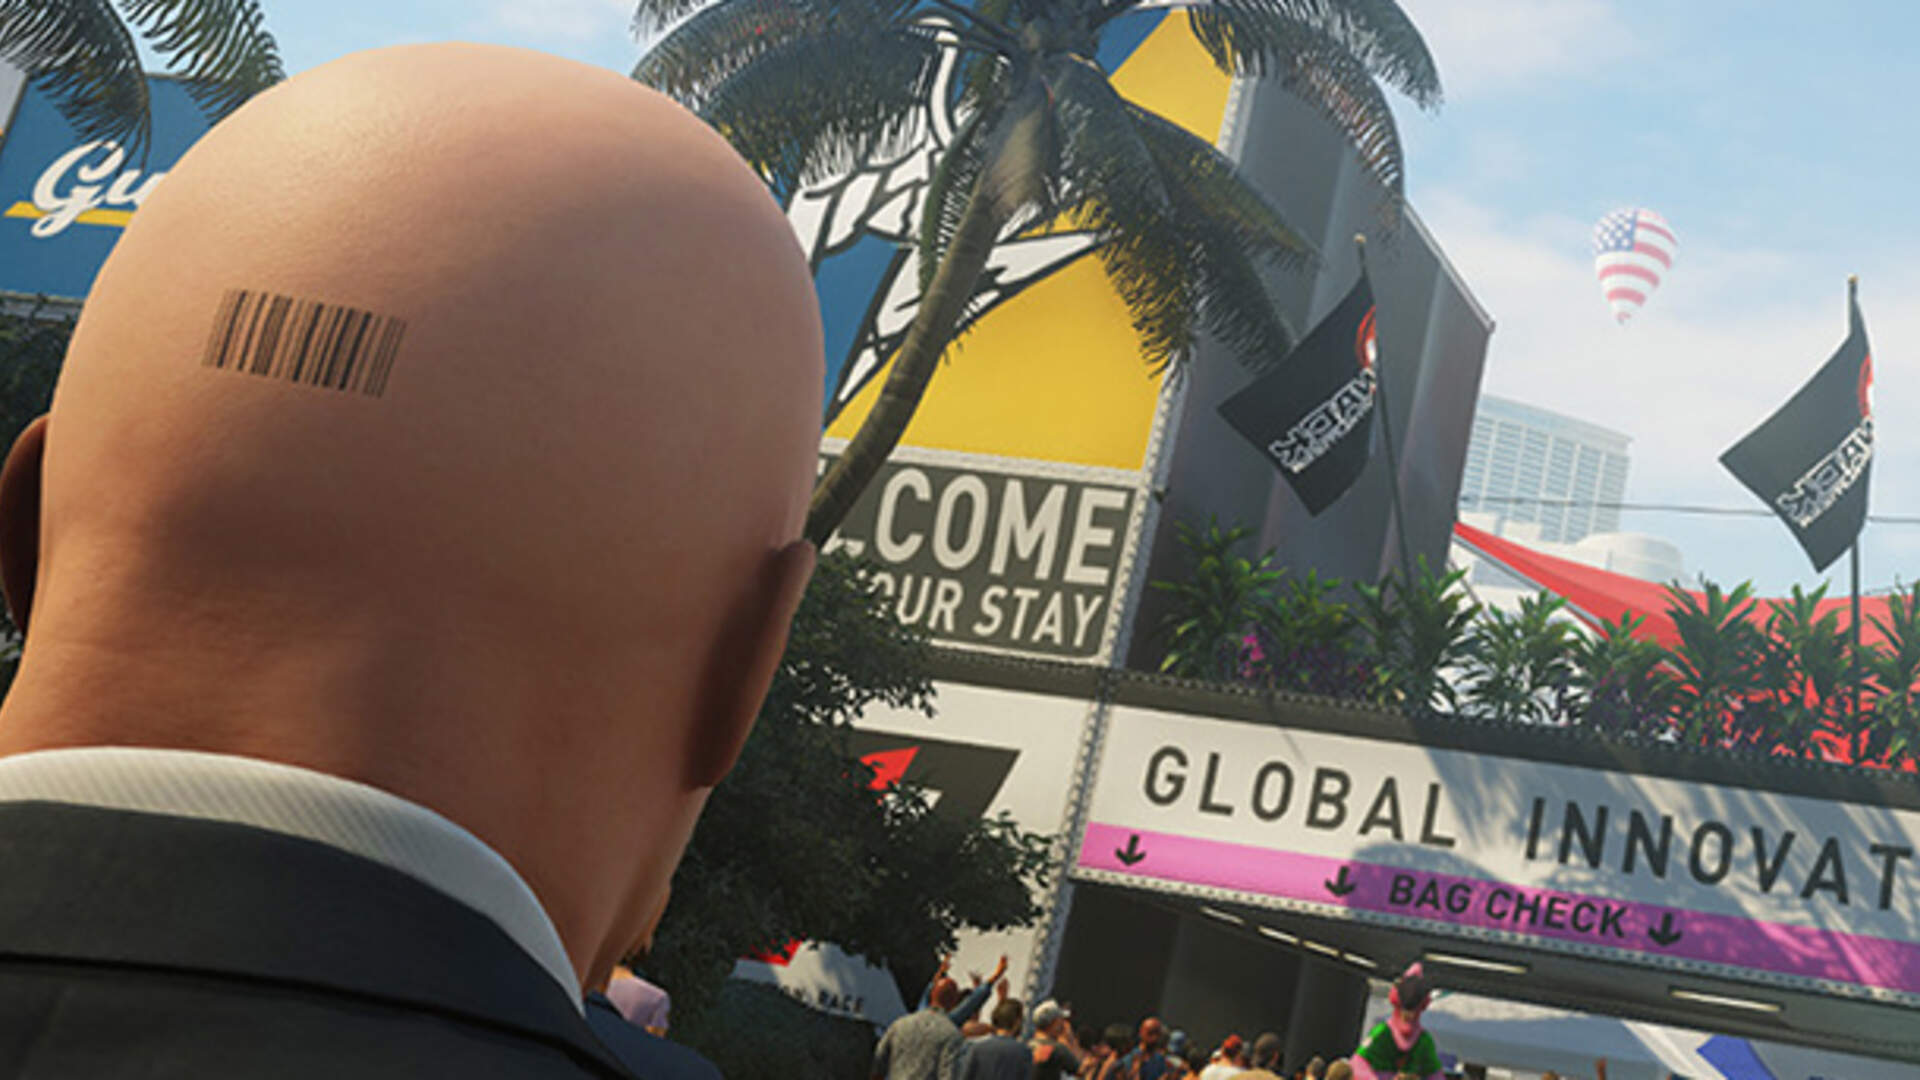 Hitman 2 Release Date, Sniper Assassin, Collector's Edition, Co-Op - Everything We Know